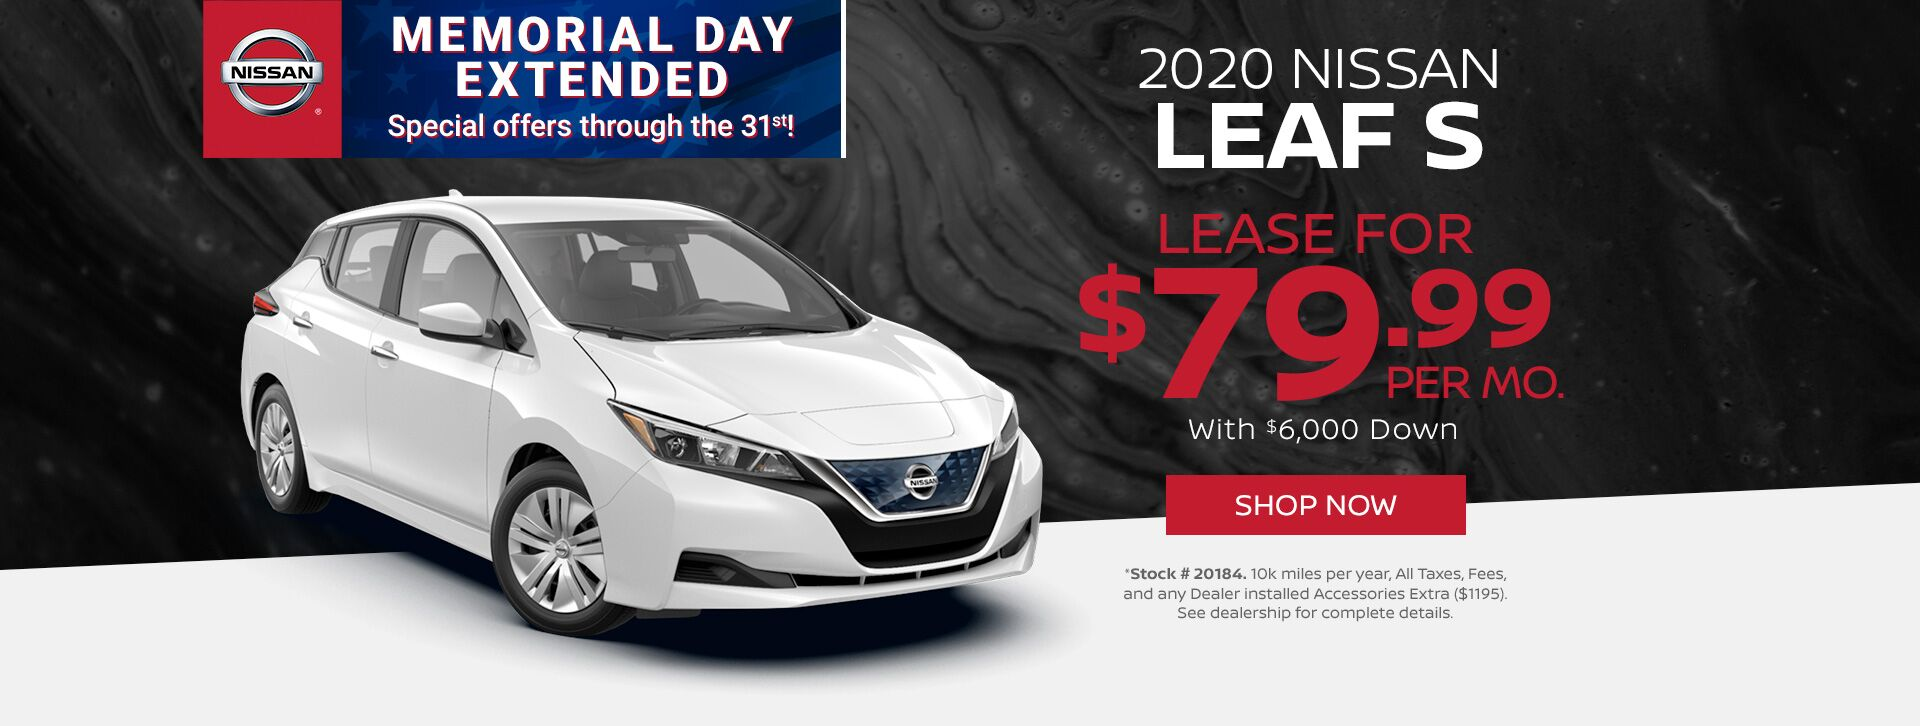 May - 2020 Leaf S